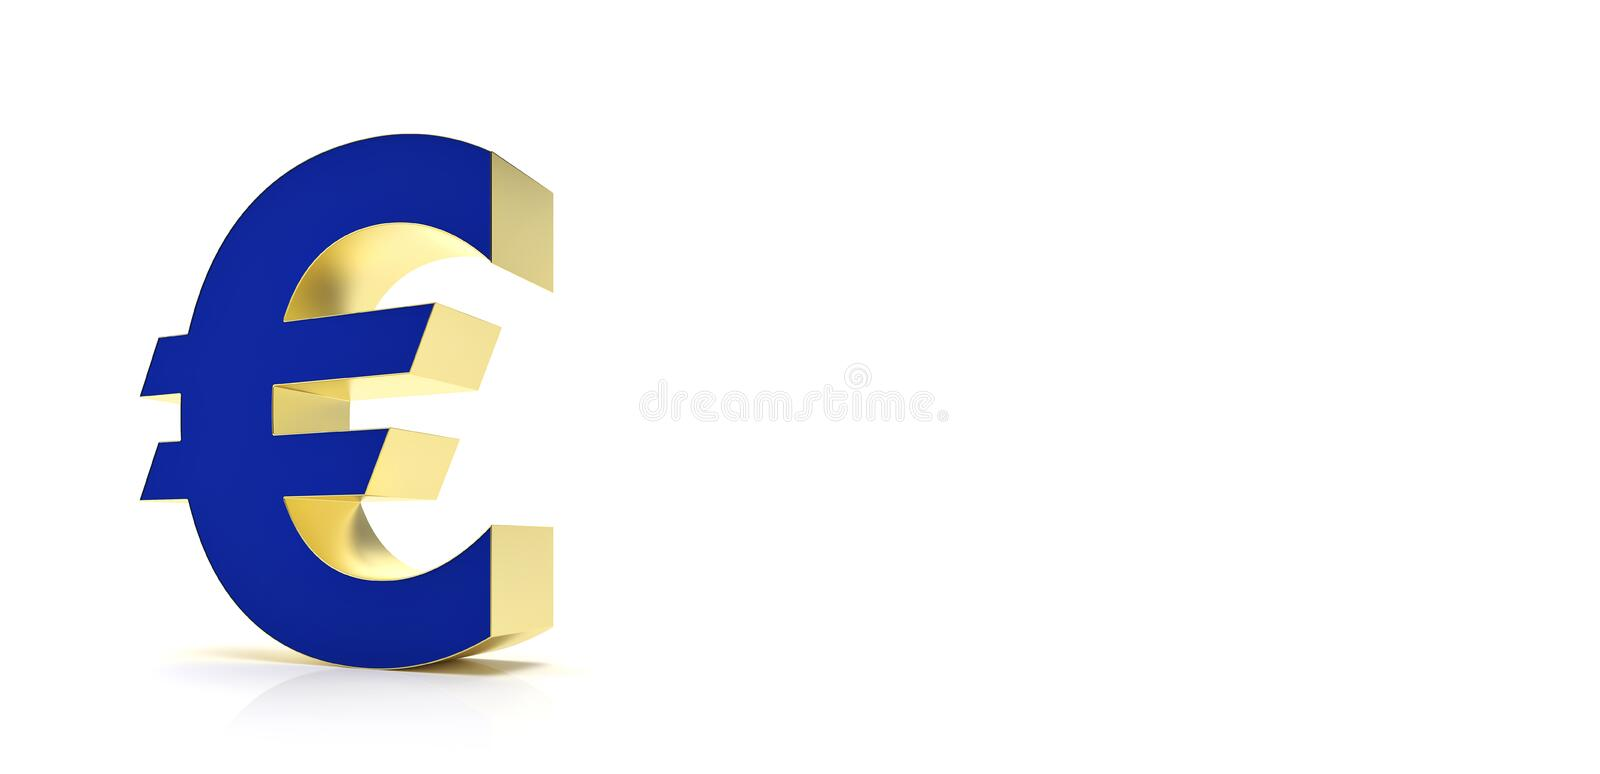 Abstract euro symbol for financial sector - Illustration royalty free illustration